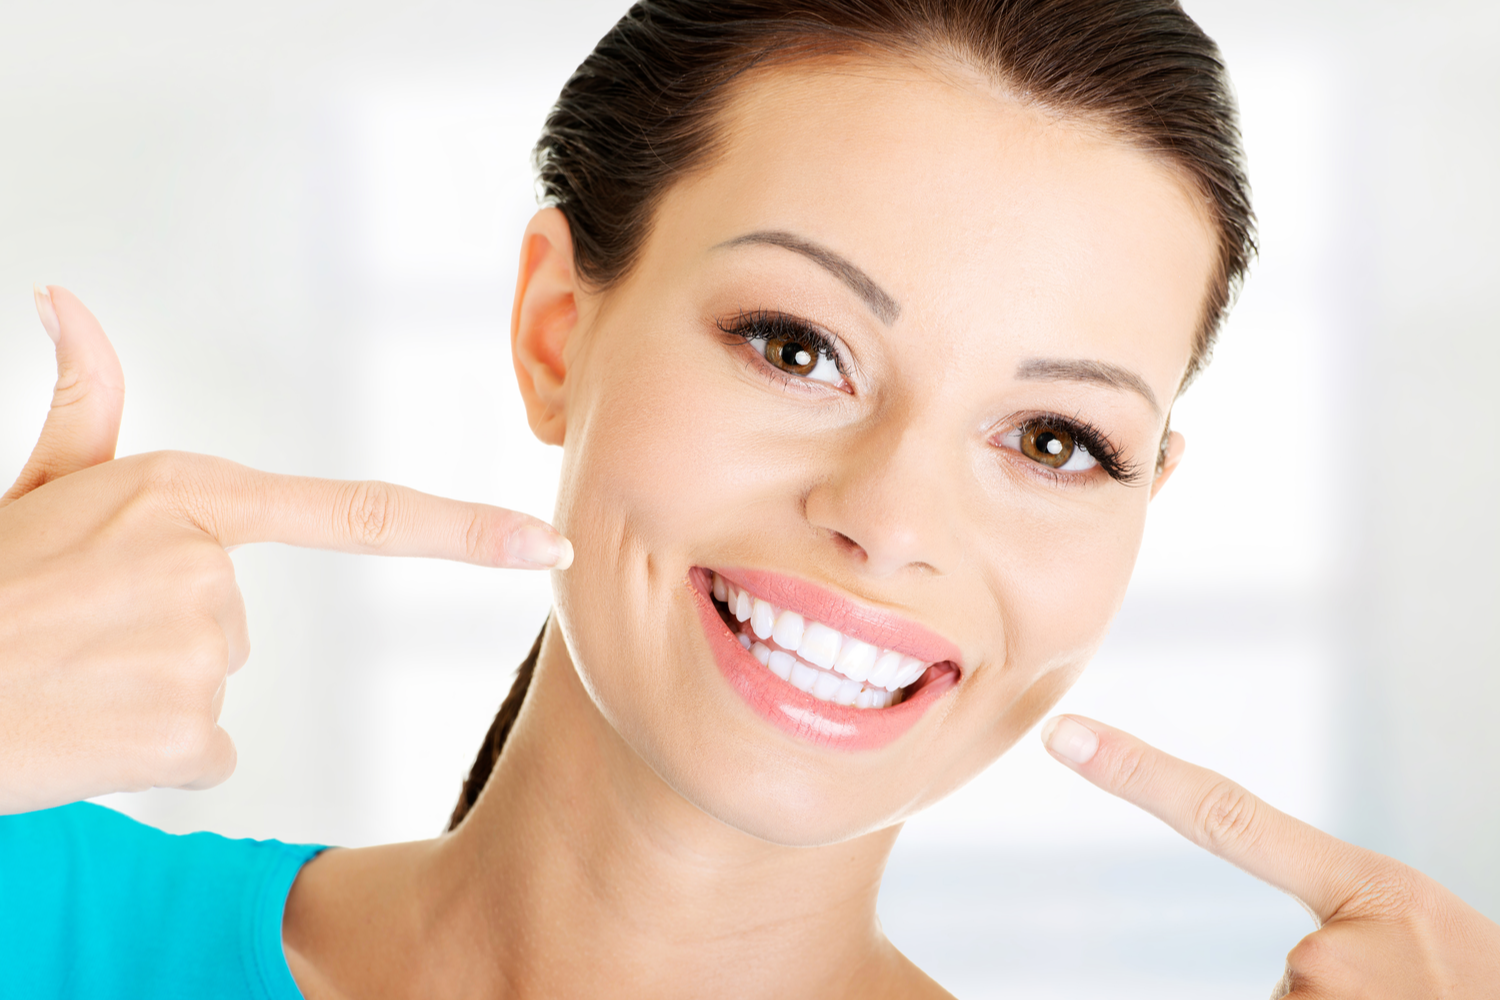 How to Increase the Results From Teeth Whitening